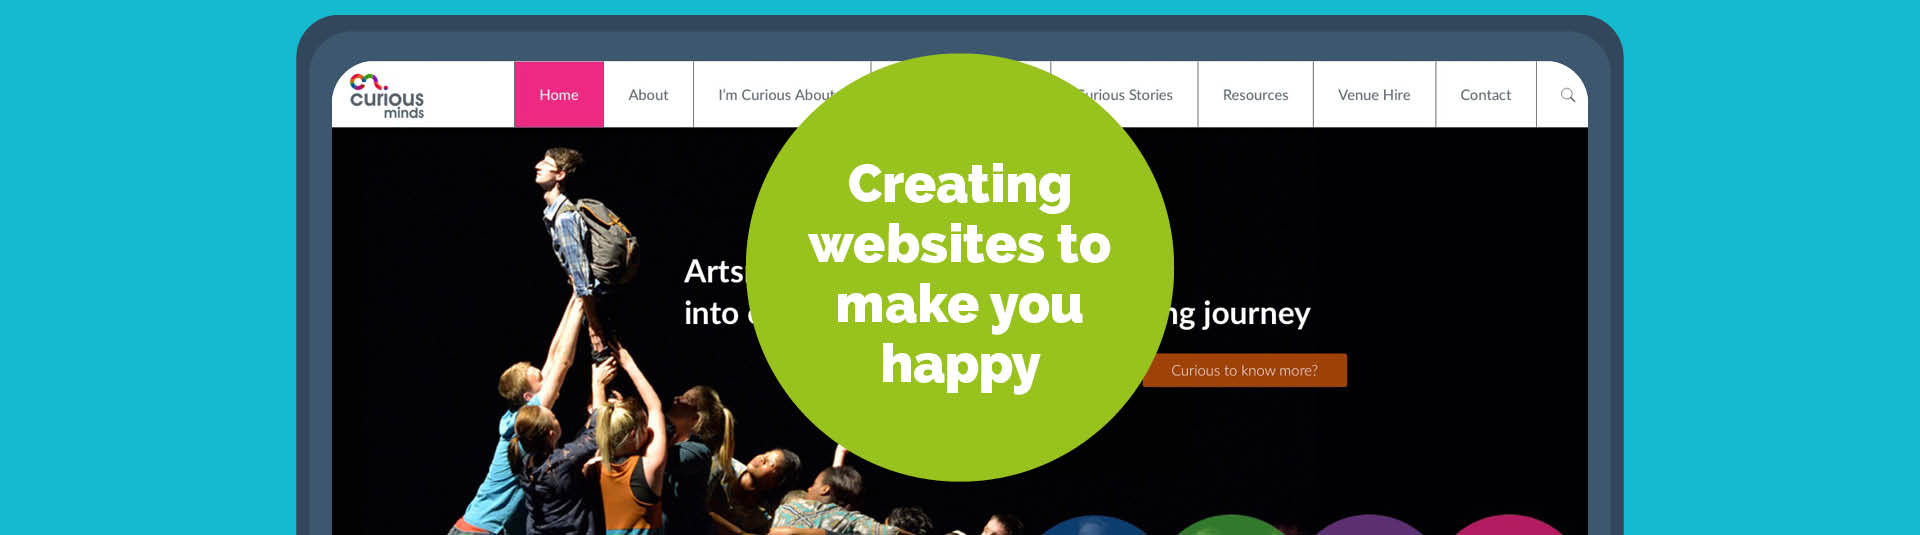 Creating websites to make you happy